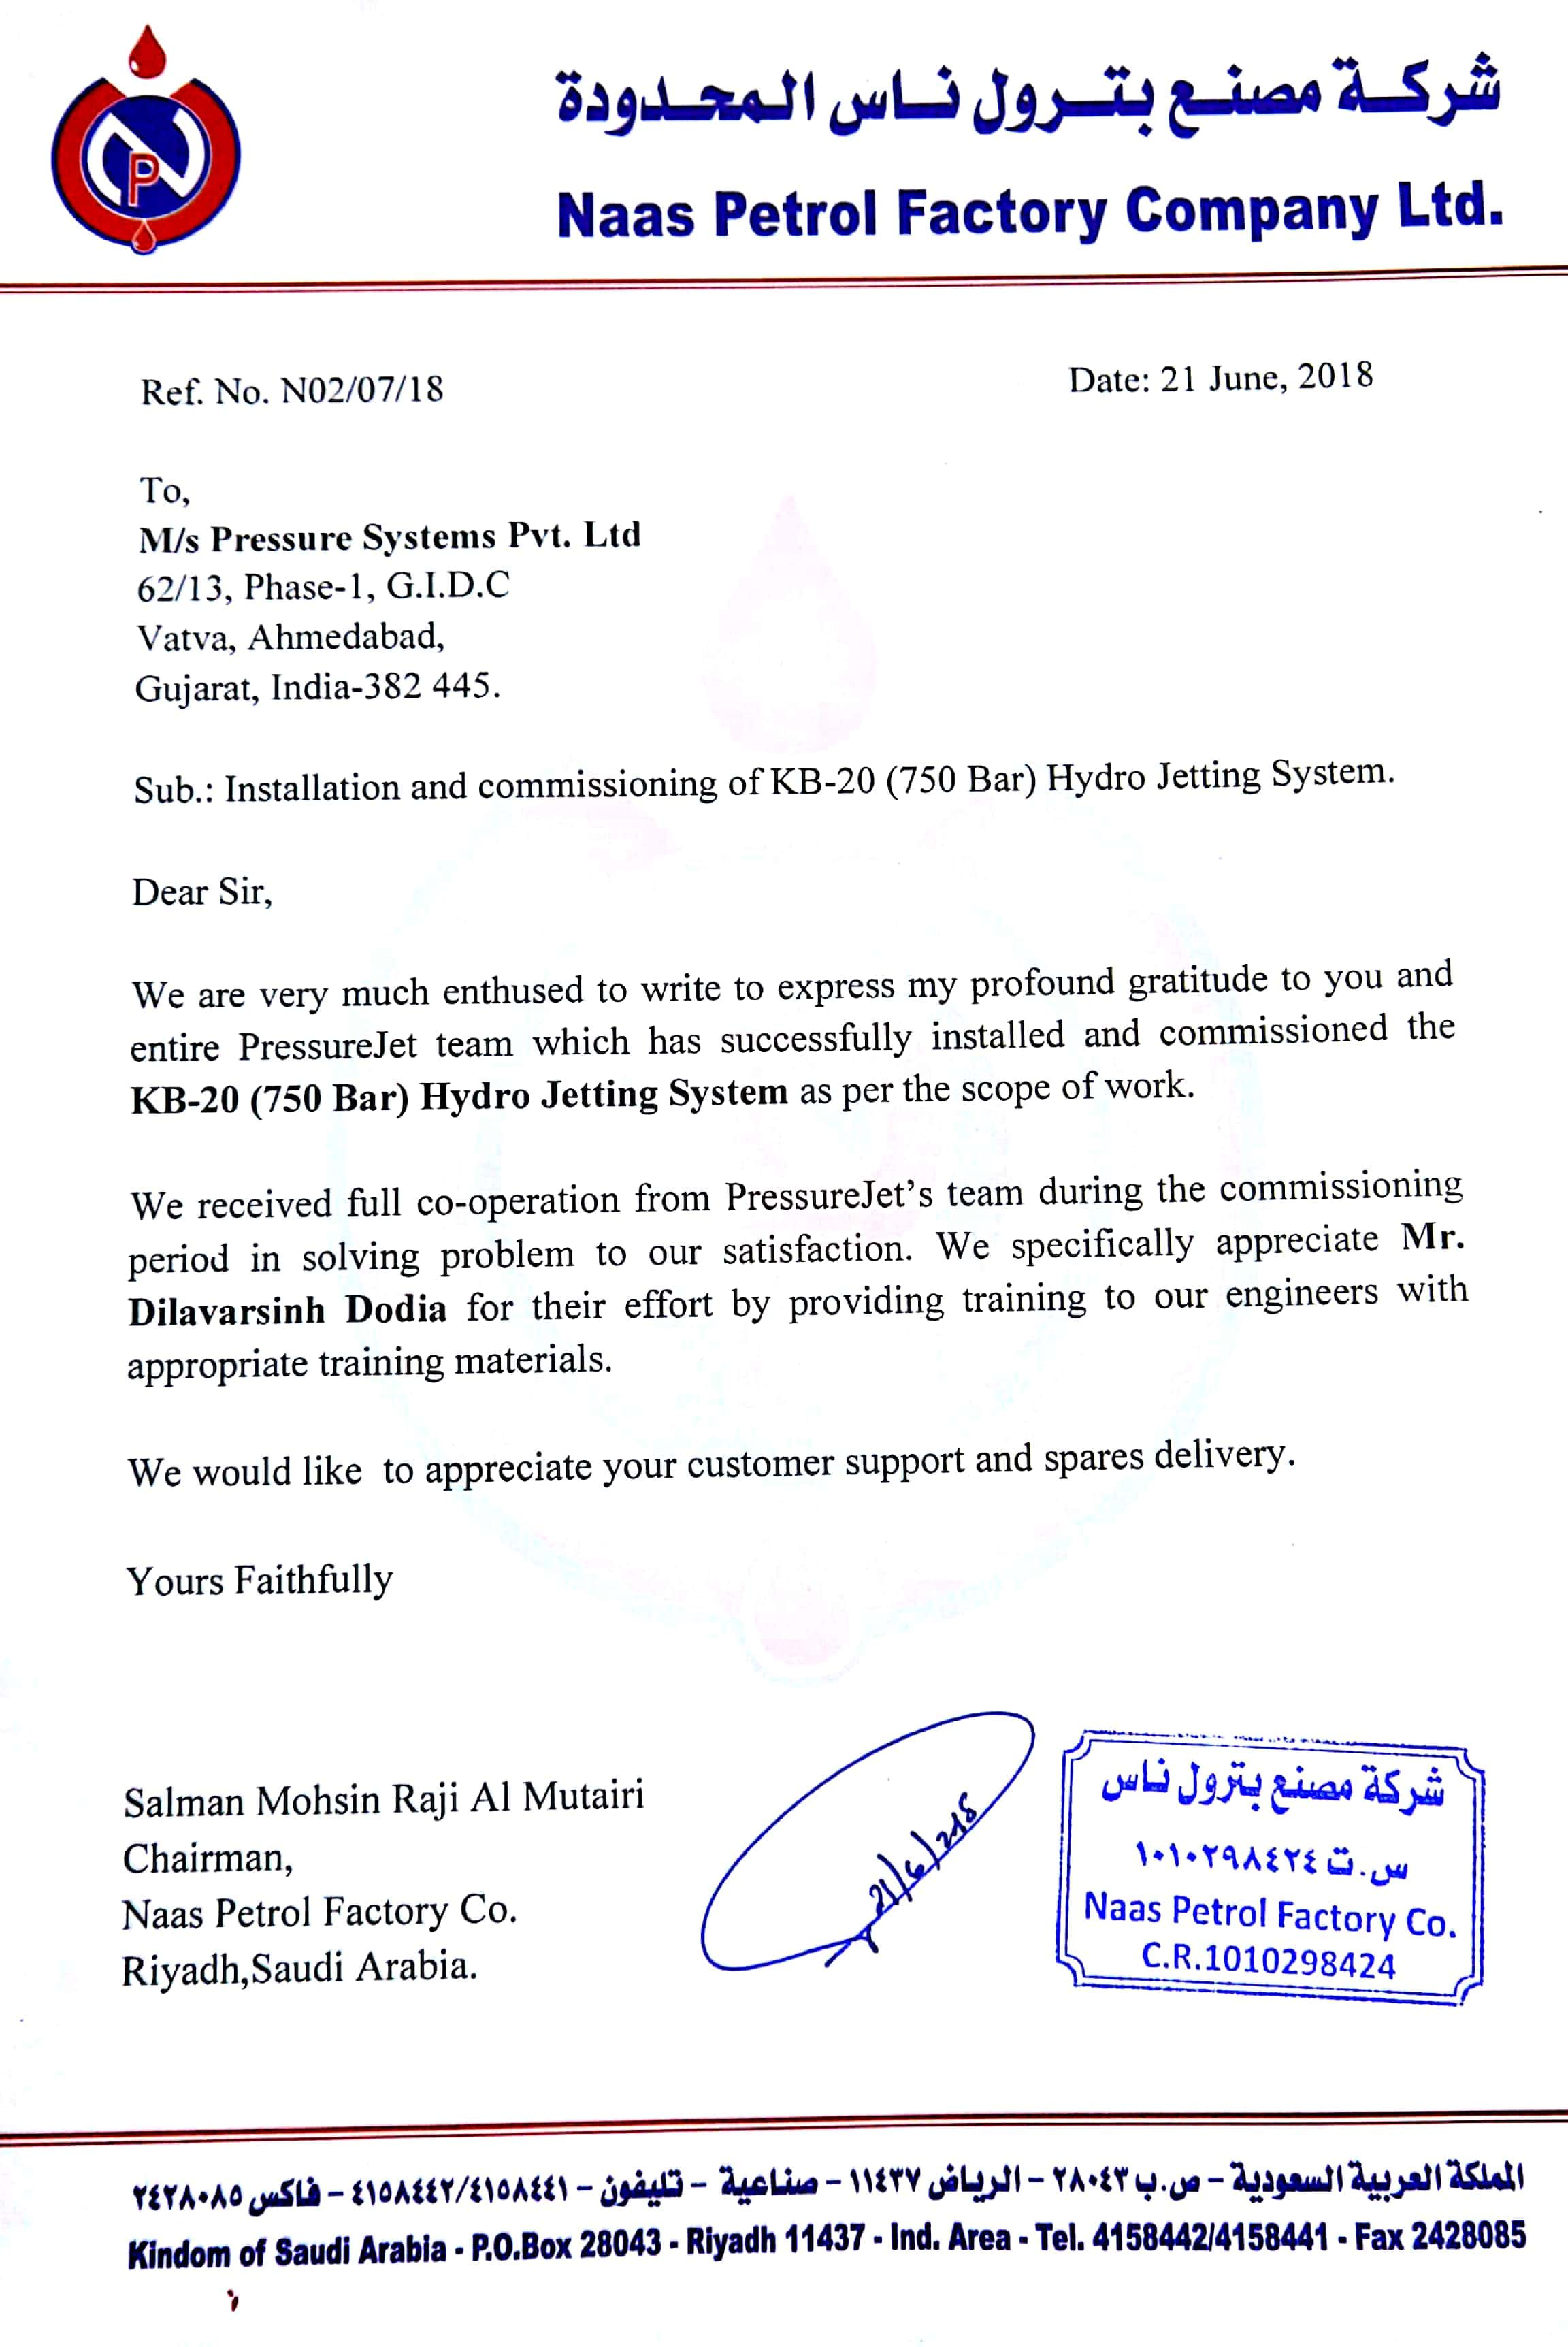 Naas Petrol Factory Company Ltd.- Saudi Arabia (Letter of appreciation certificate)